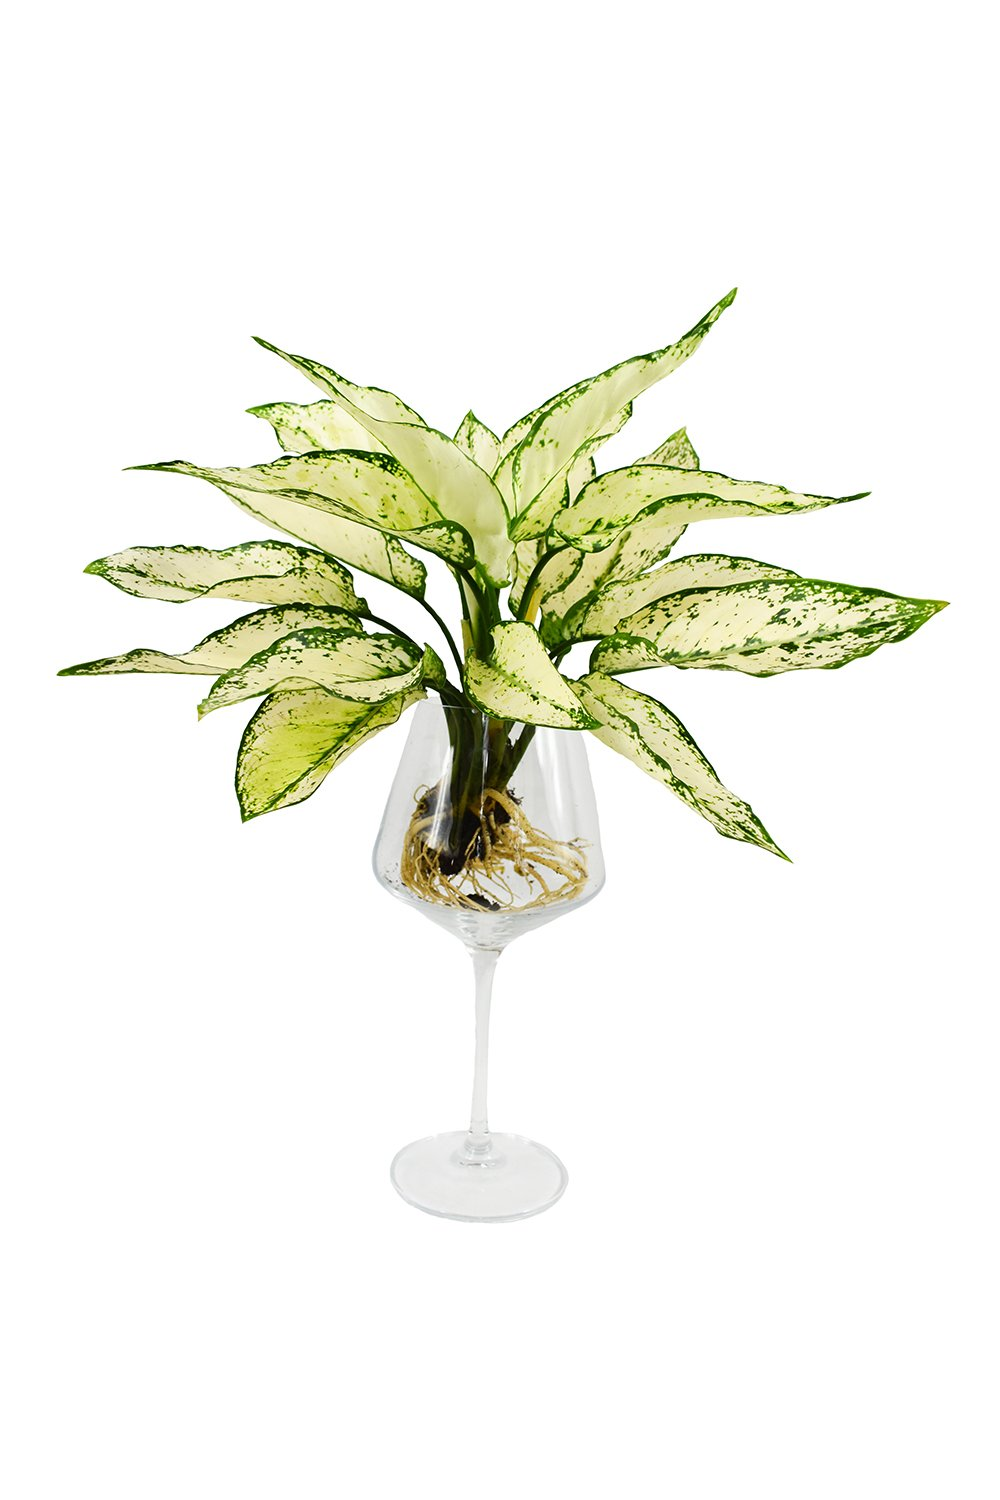 Aglaonema Super White with exposed roots